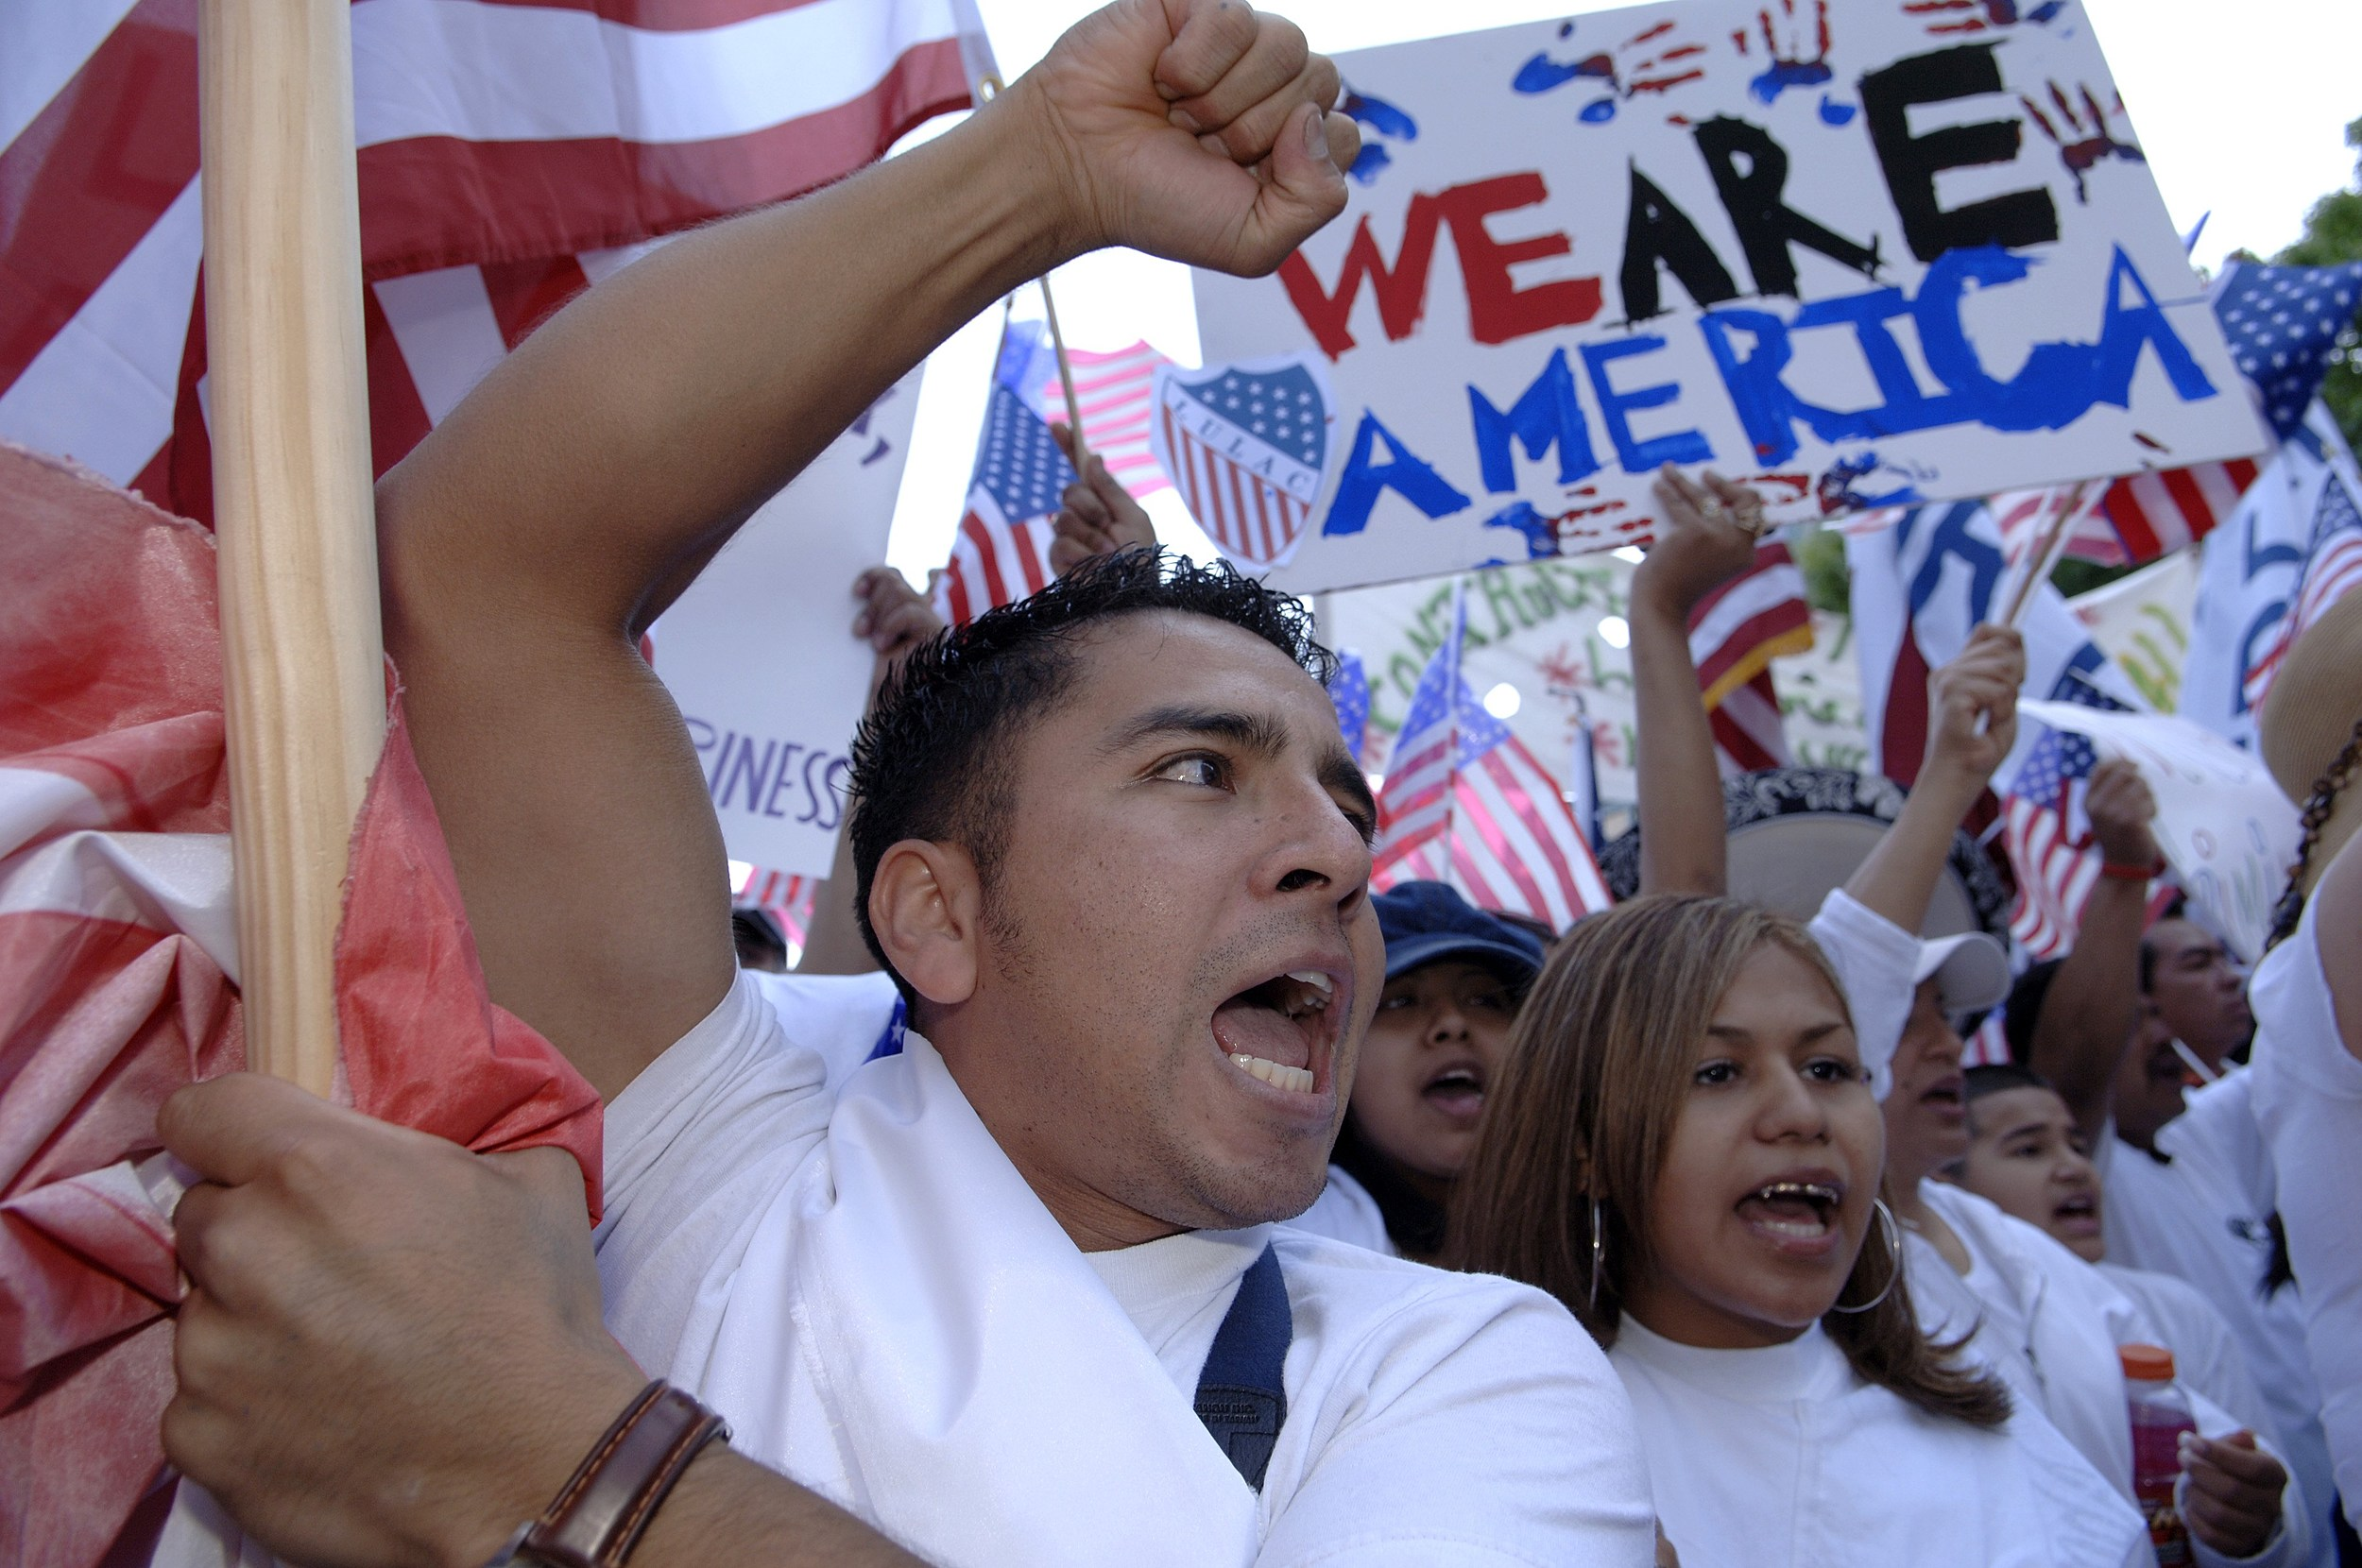 Marchers In Dallas Protest Proposed Immigration Reform